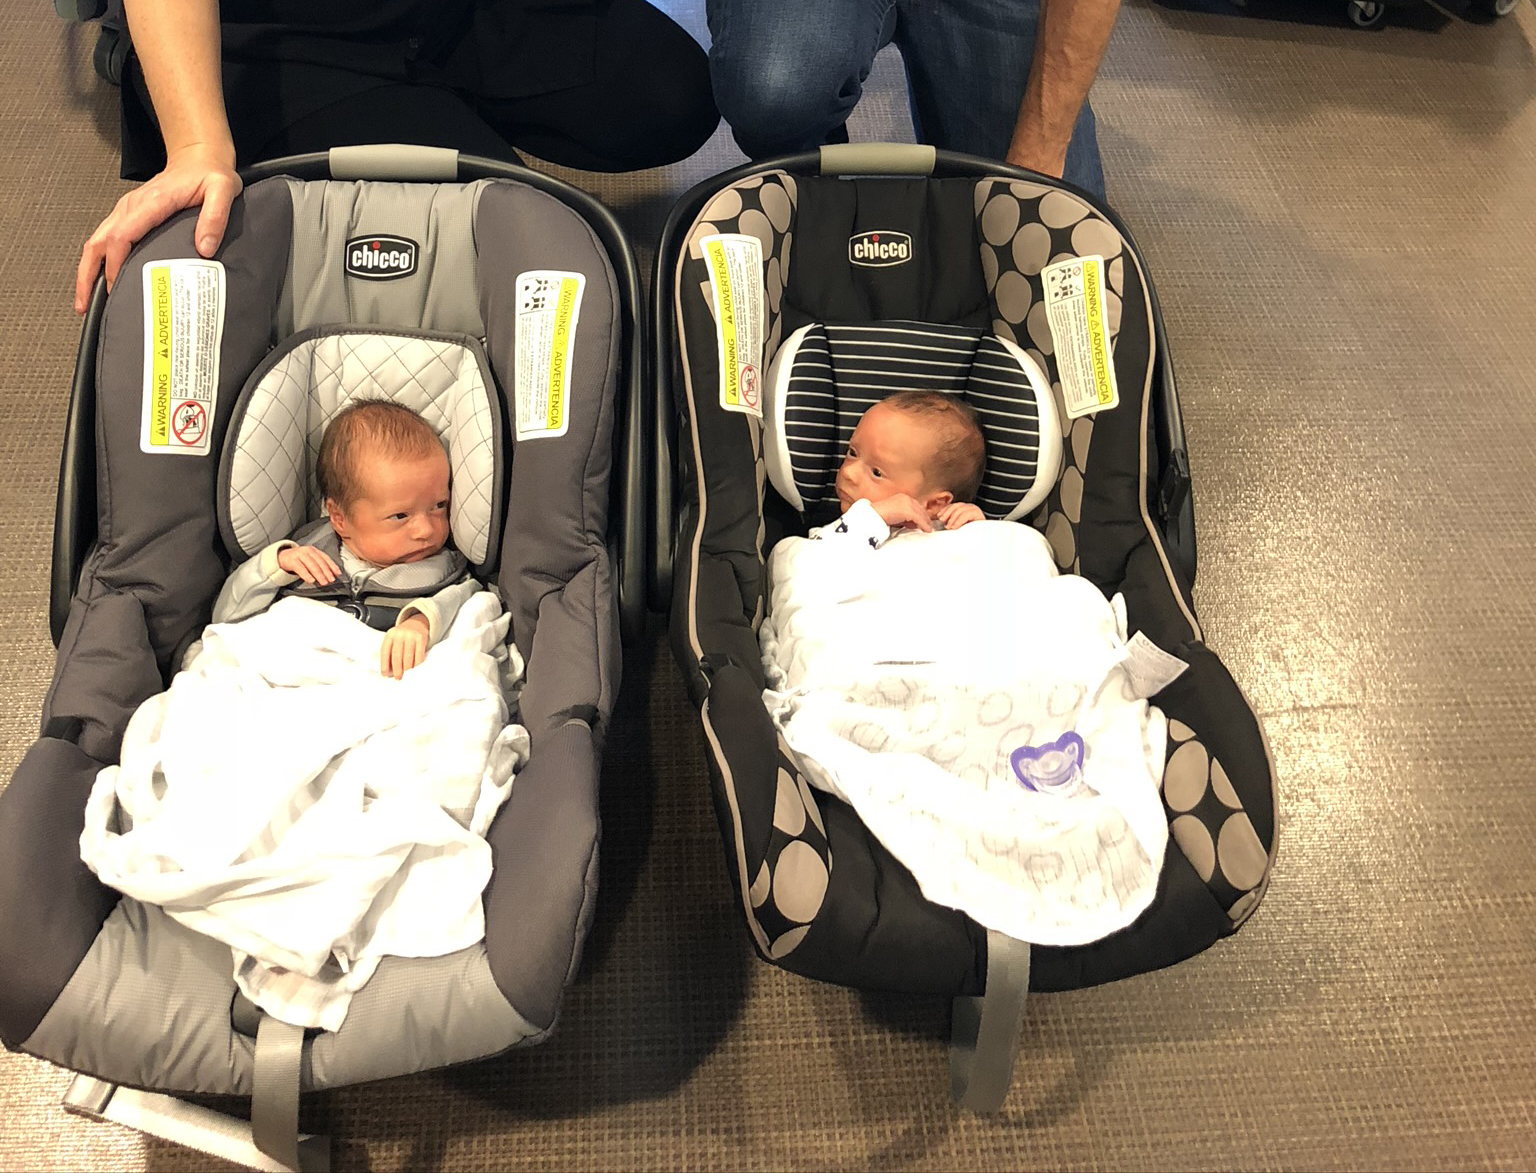 Twins heading home from the NICU in car seats.